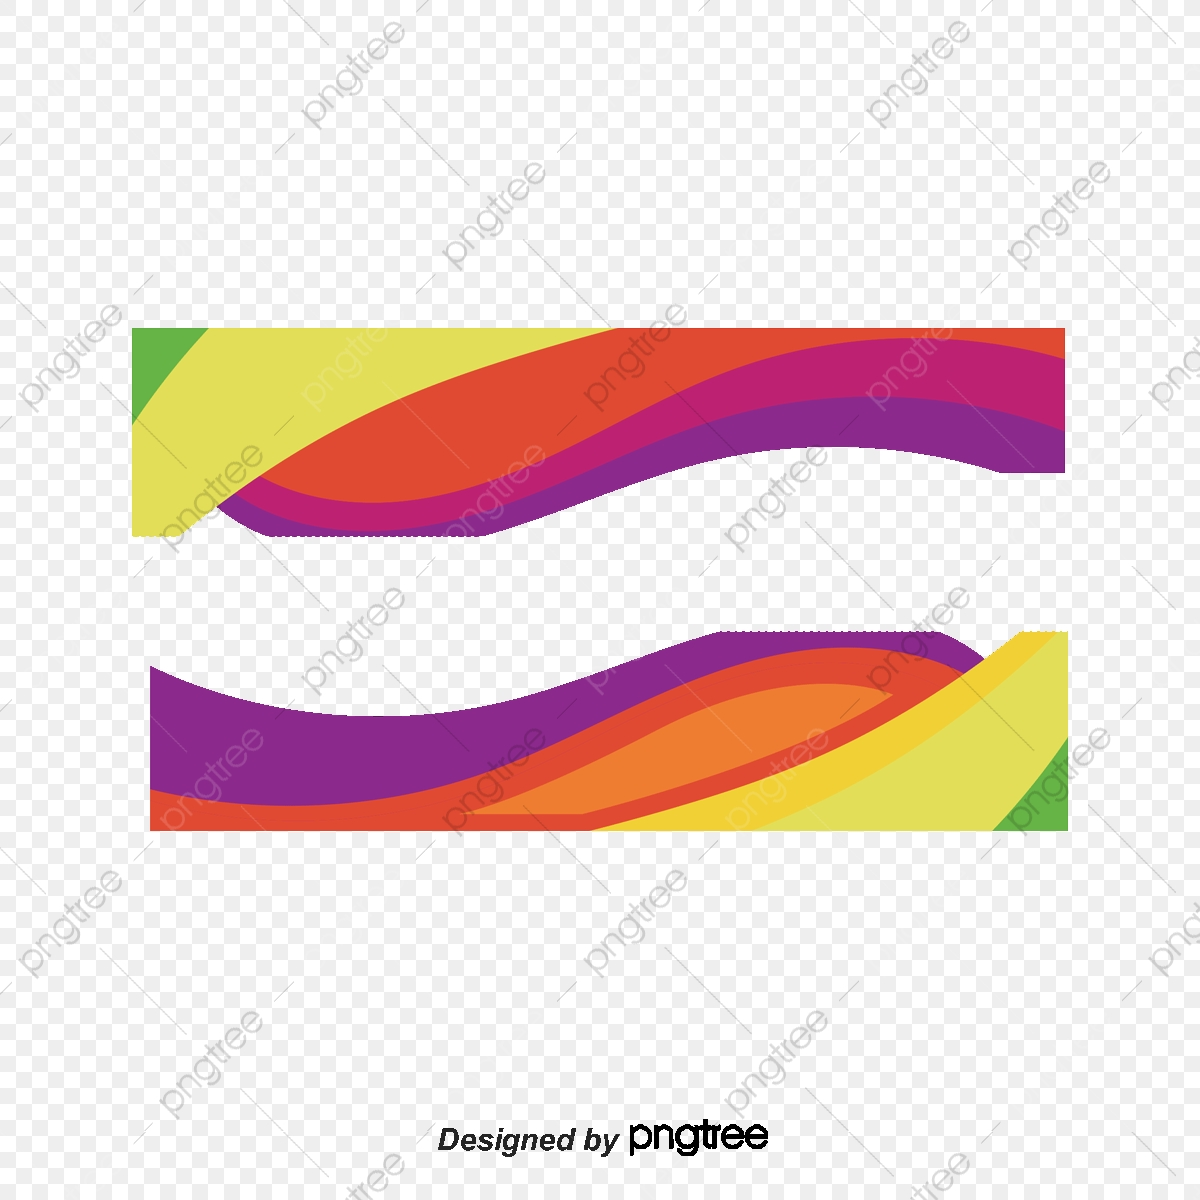 Color Wave Border Vector Png Border Color Png Transparent Clipart Image And Psd File For Free Download